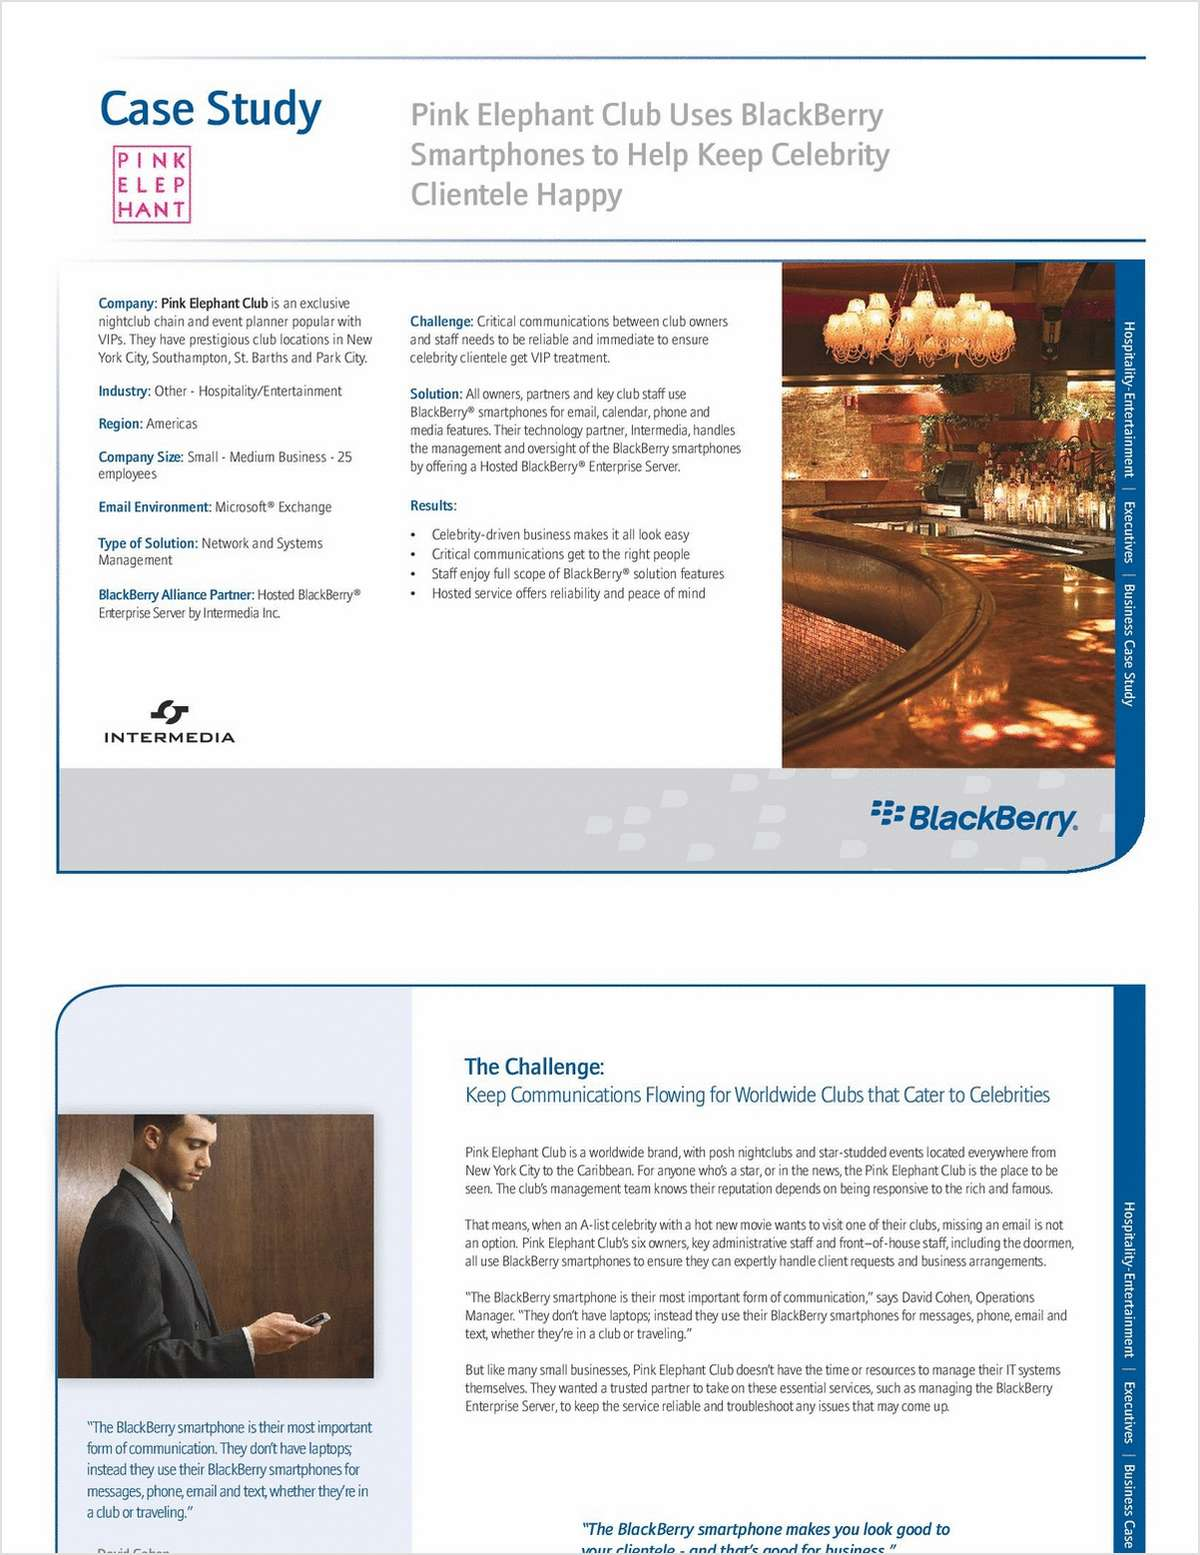 The BlackBerry Solution for Keeping Celebrity Clientele Happy: The Pink Elephant Club Case Study